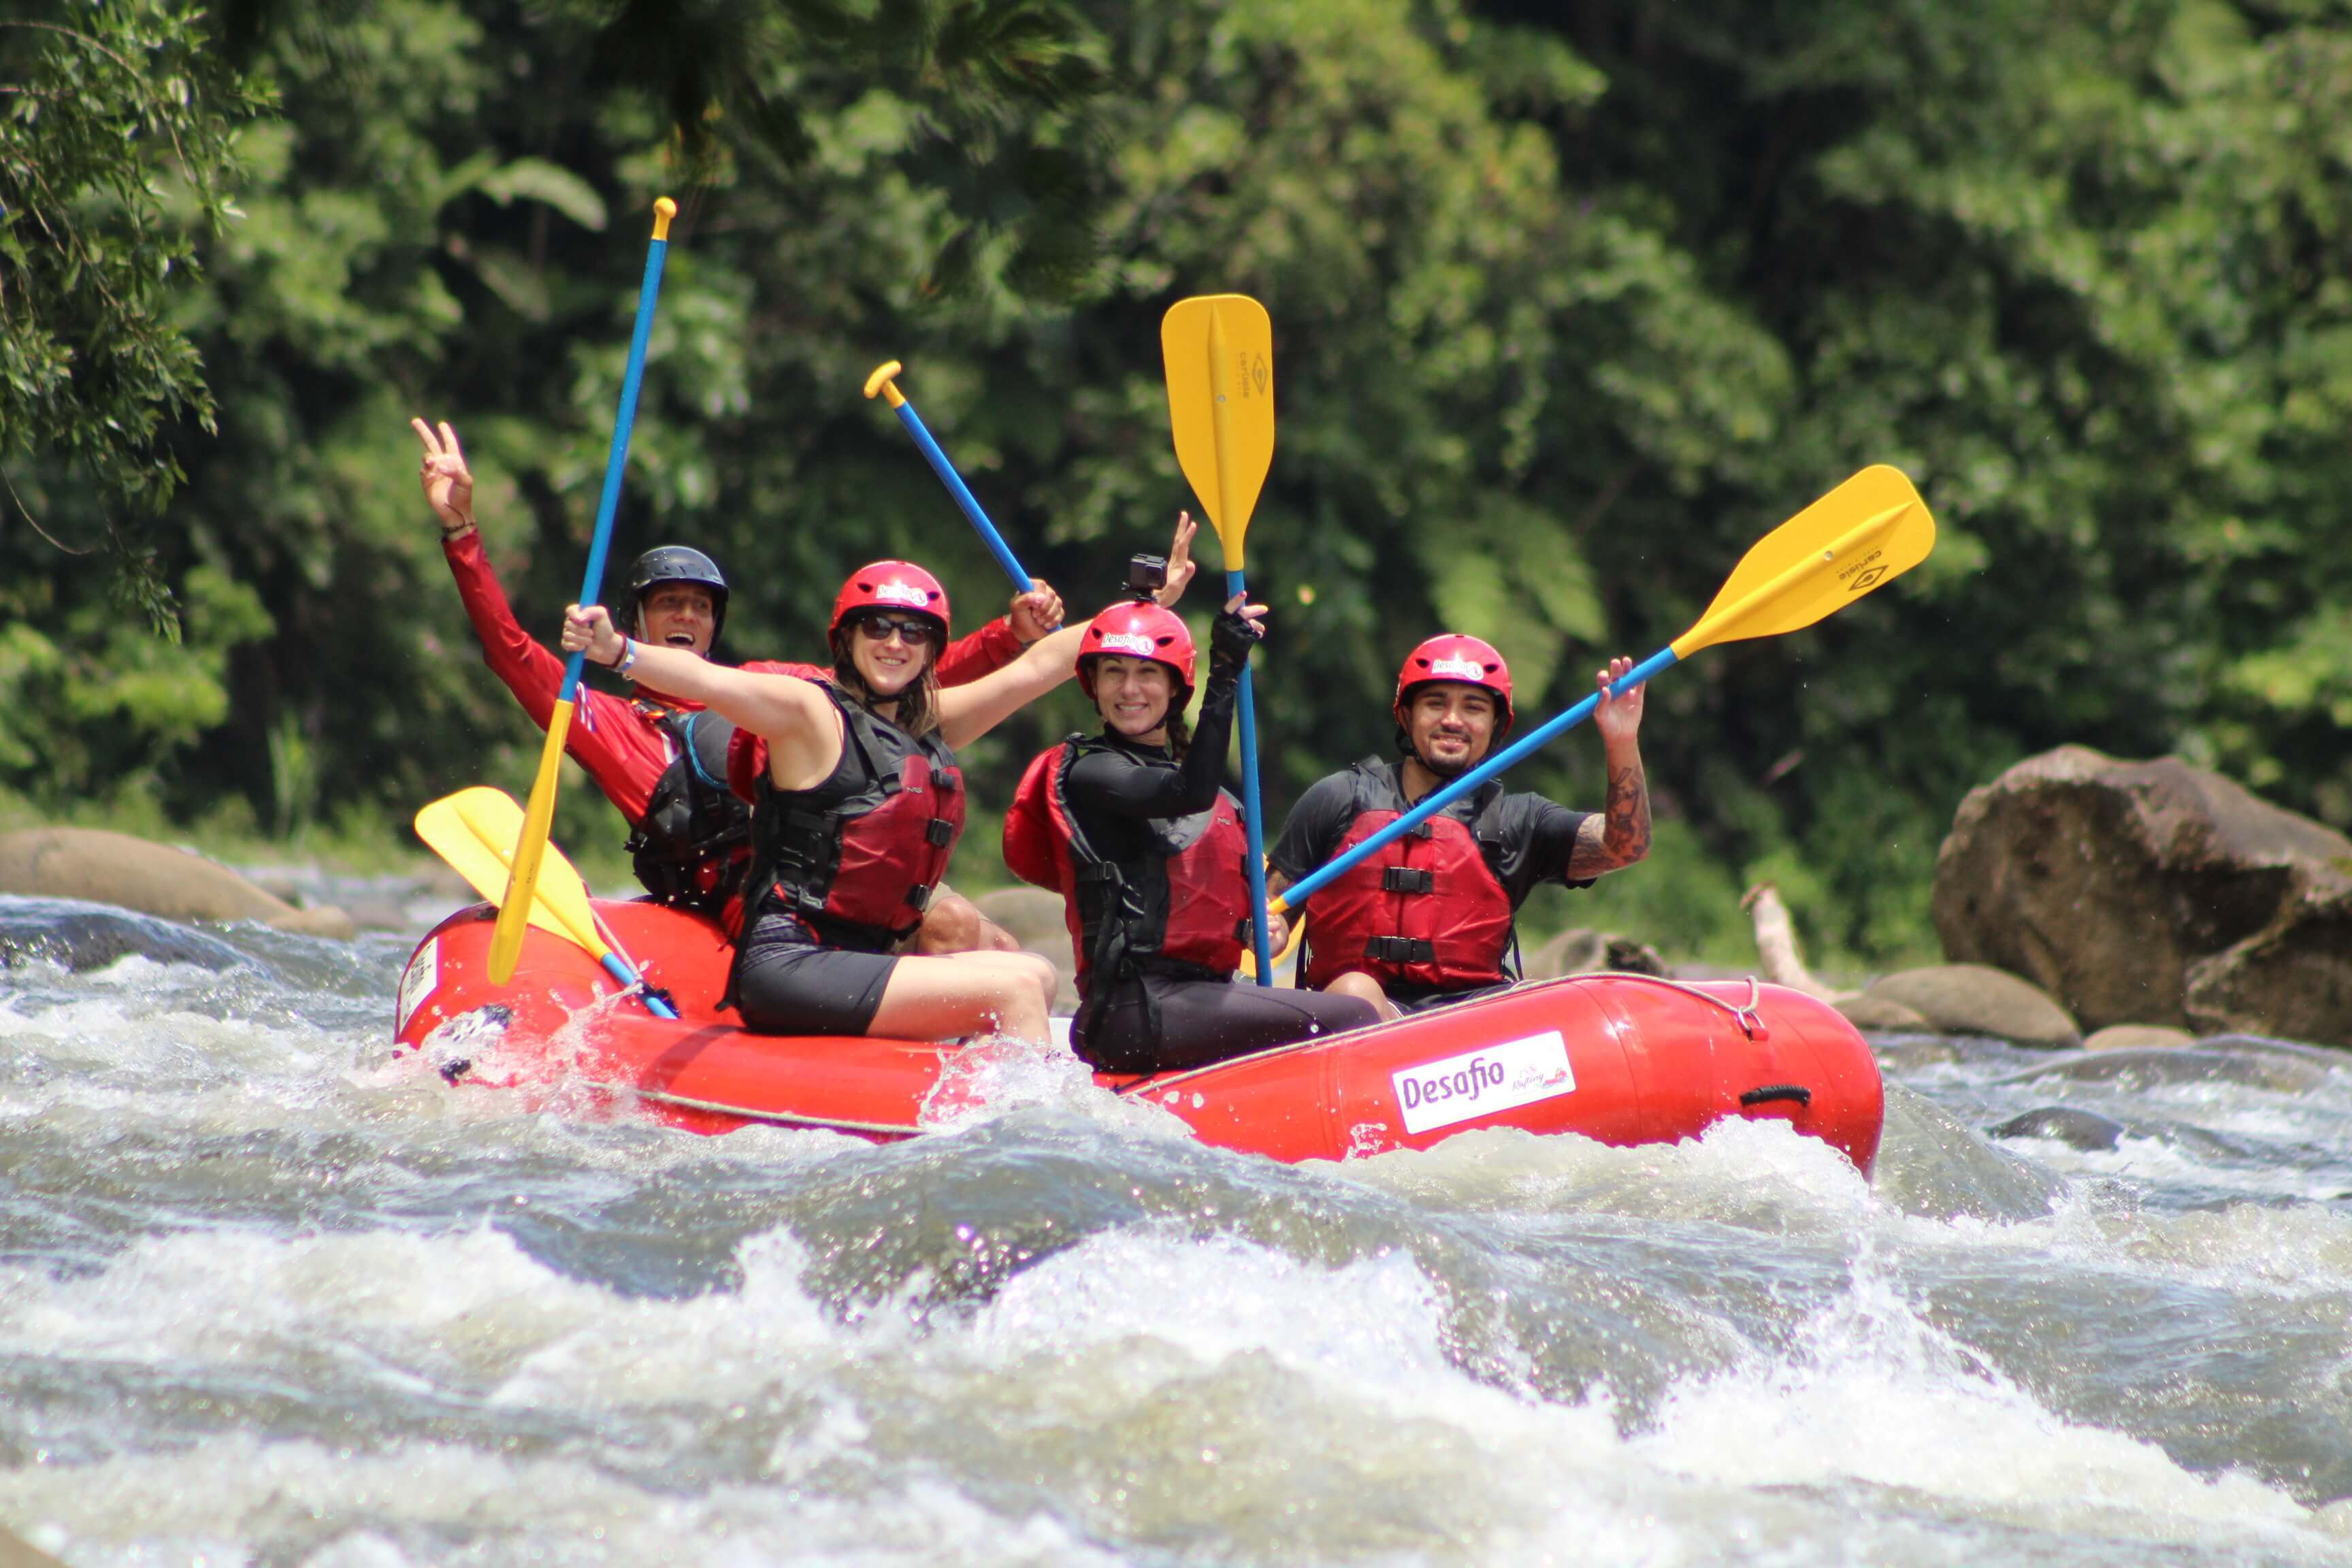 Whitewater raft is Must DO in Costa Rica